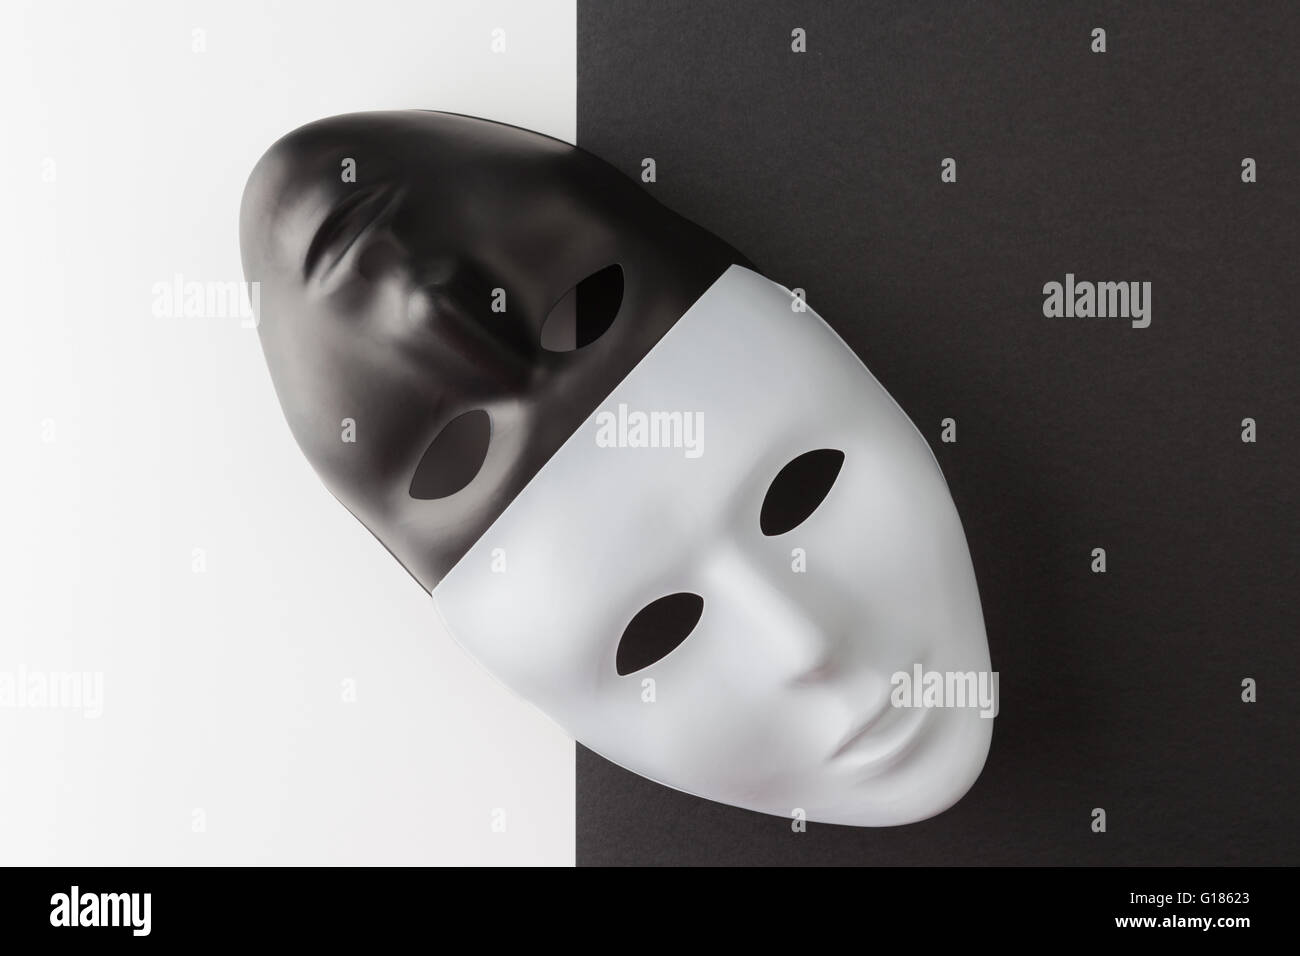 Black and white masks placed diagonally on contrasting background. Web anonymity concept - Stock Image